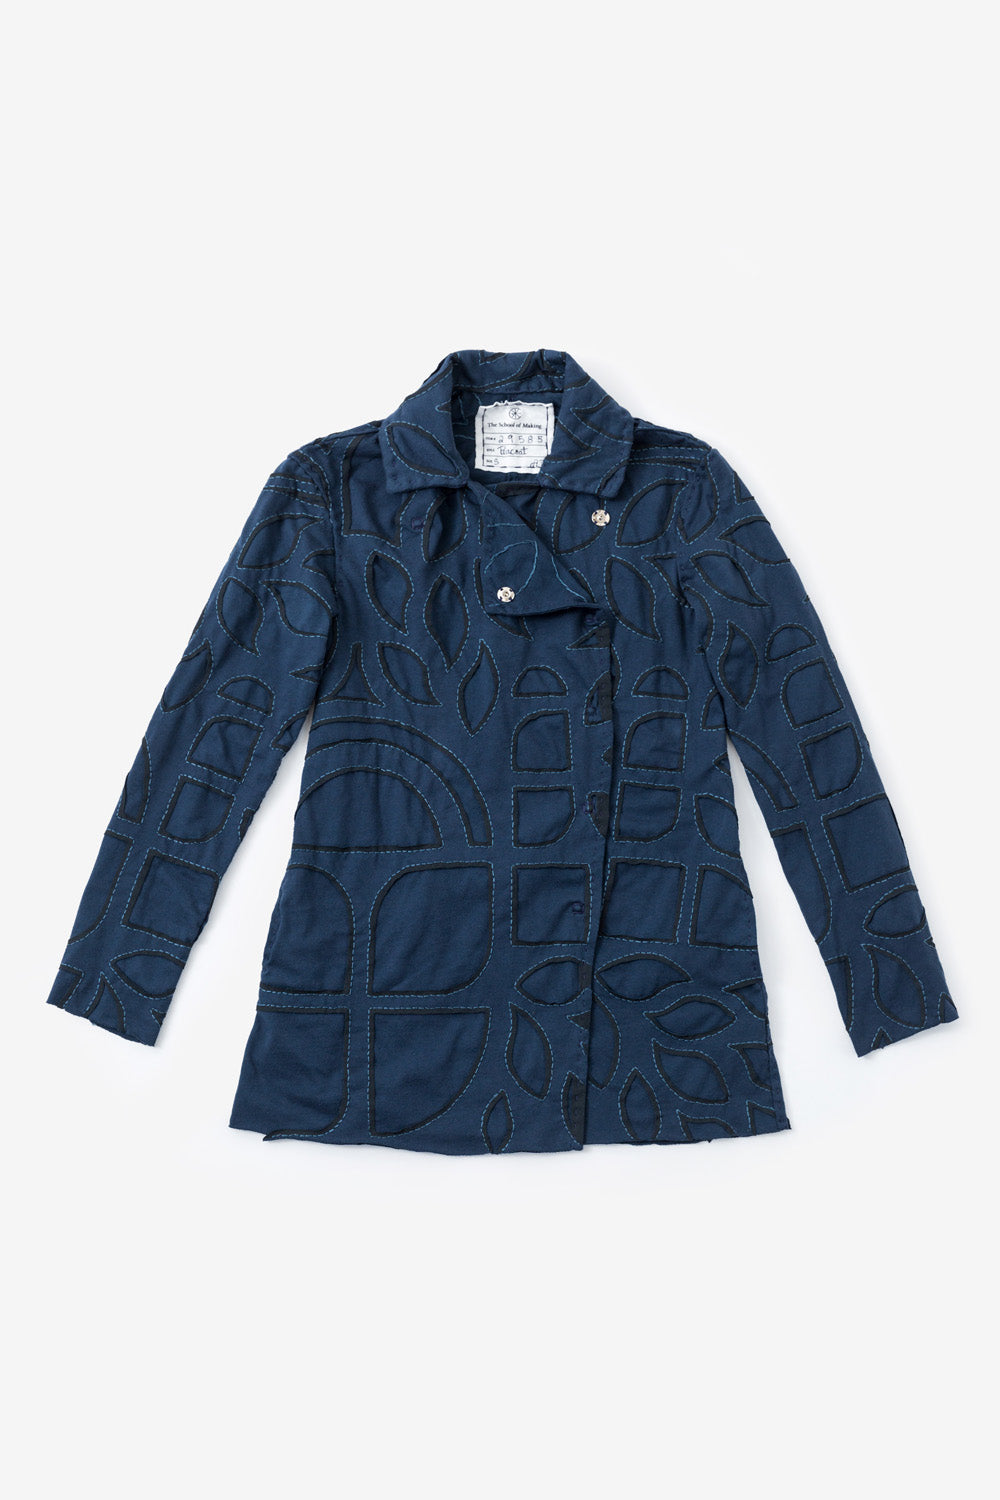 image of The Asymmetrical Peacoat Kit